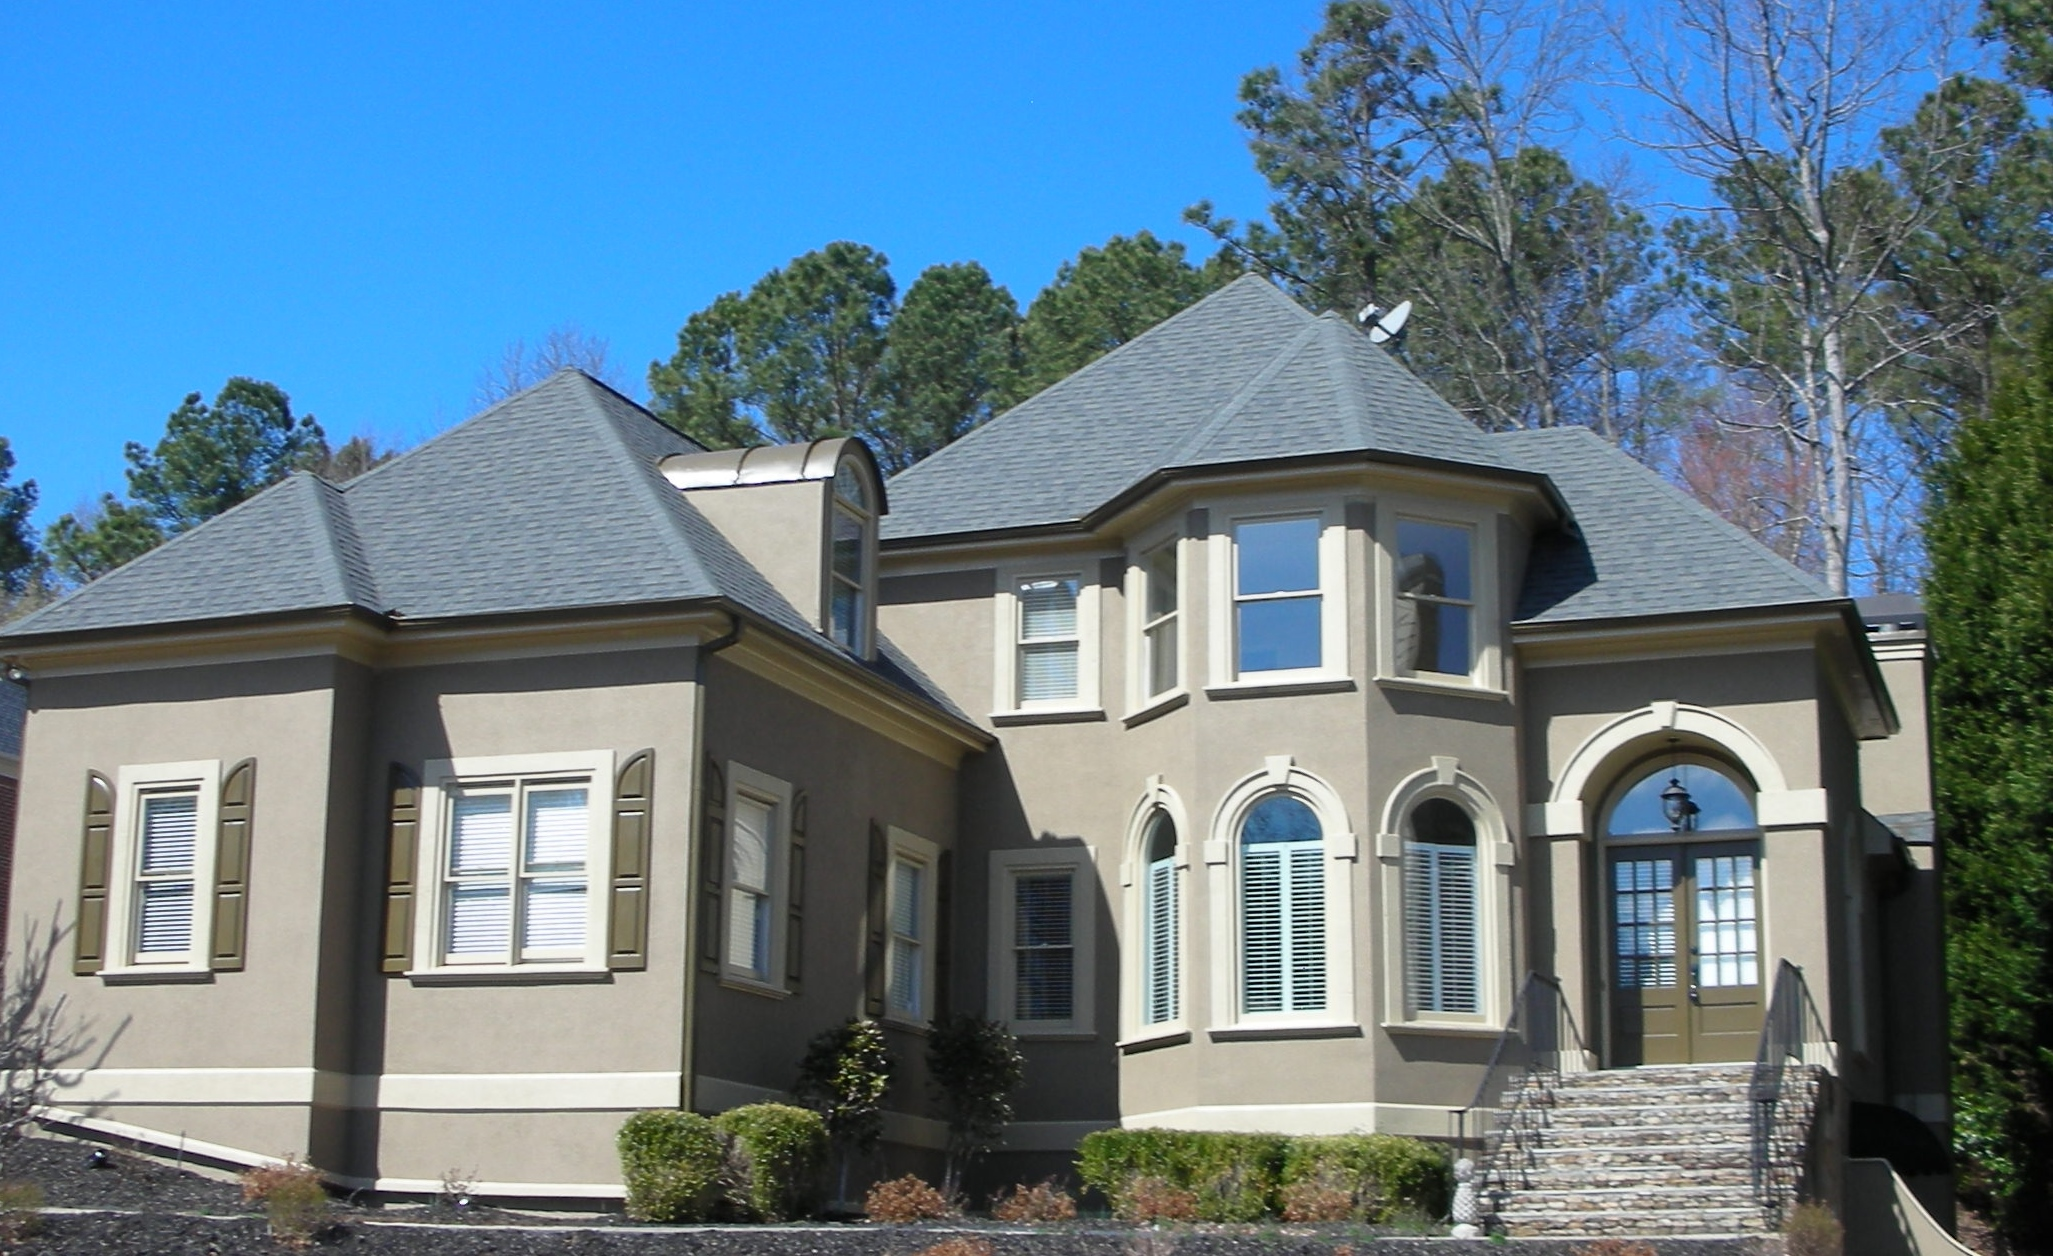 Homes for sale in woodstock ga 30189 for Homes for sale in woodstock